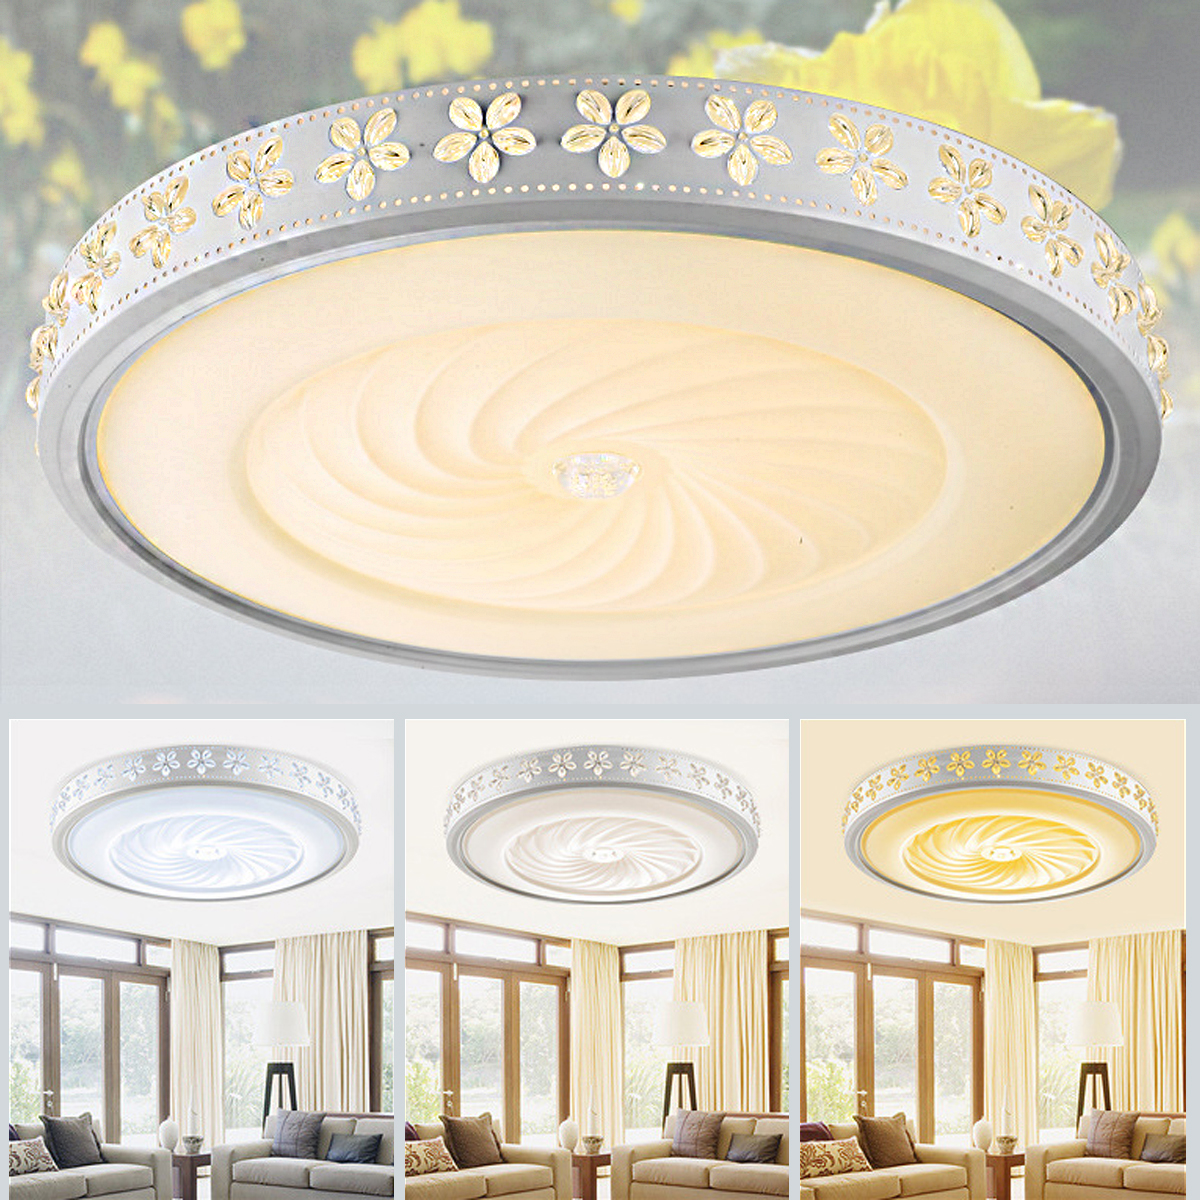 24W Dimmable luminaria LED Ceiling Lights for Living Room Bedroom Lighting Light Modern Led Ceiling Lamp With Remote Control